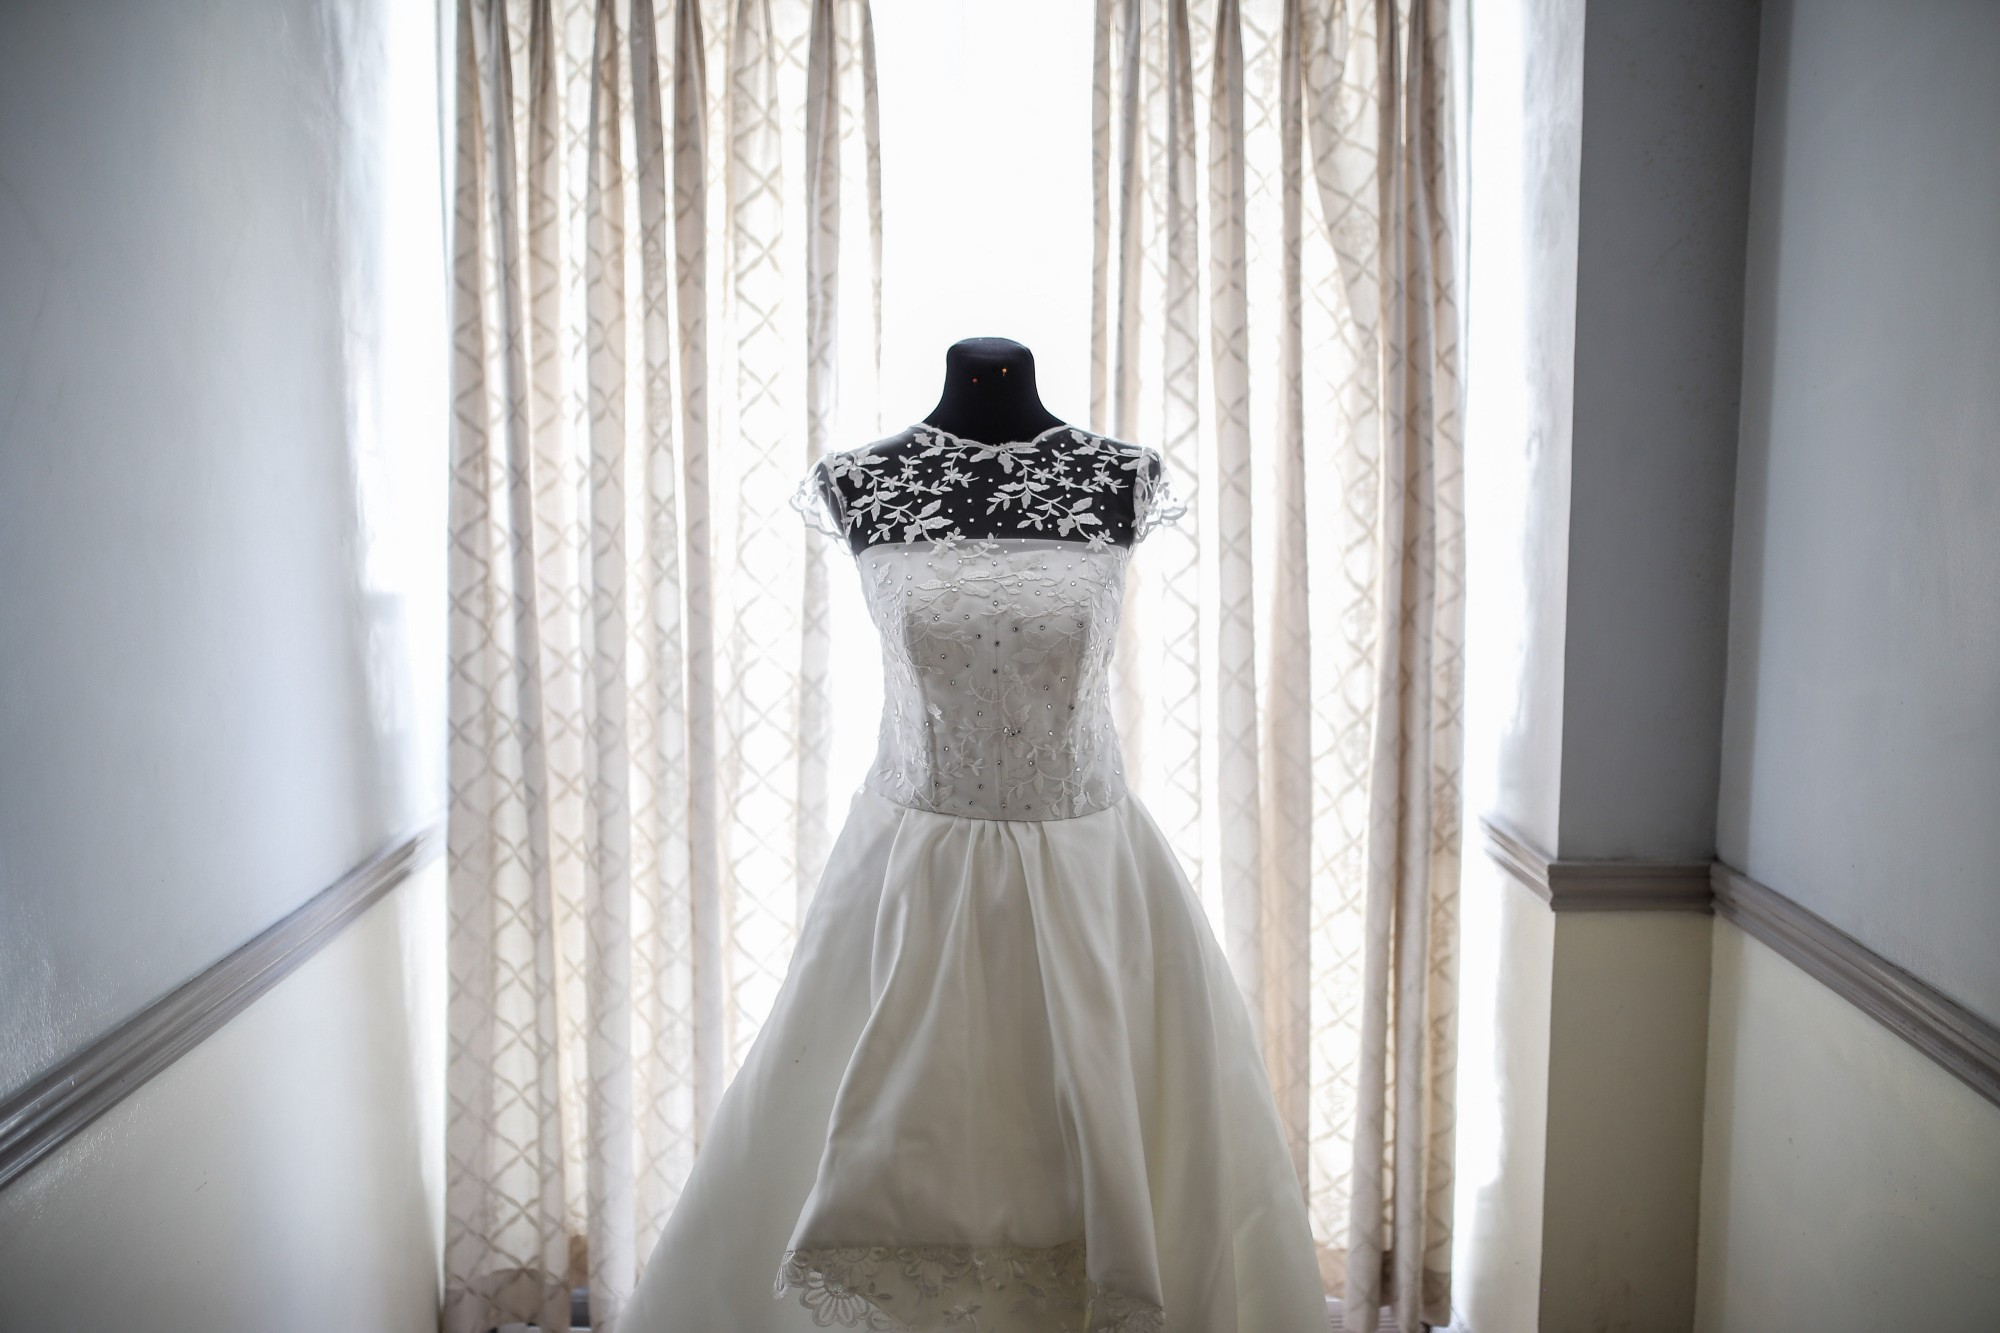 A wedding dress hanging up in a bedroom in front of a window.